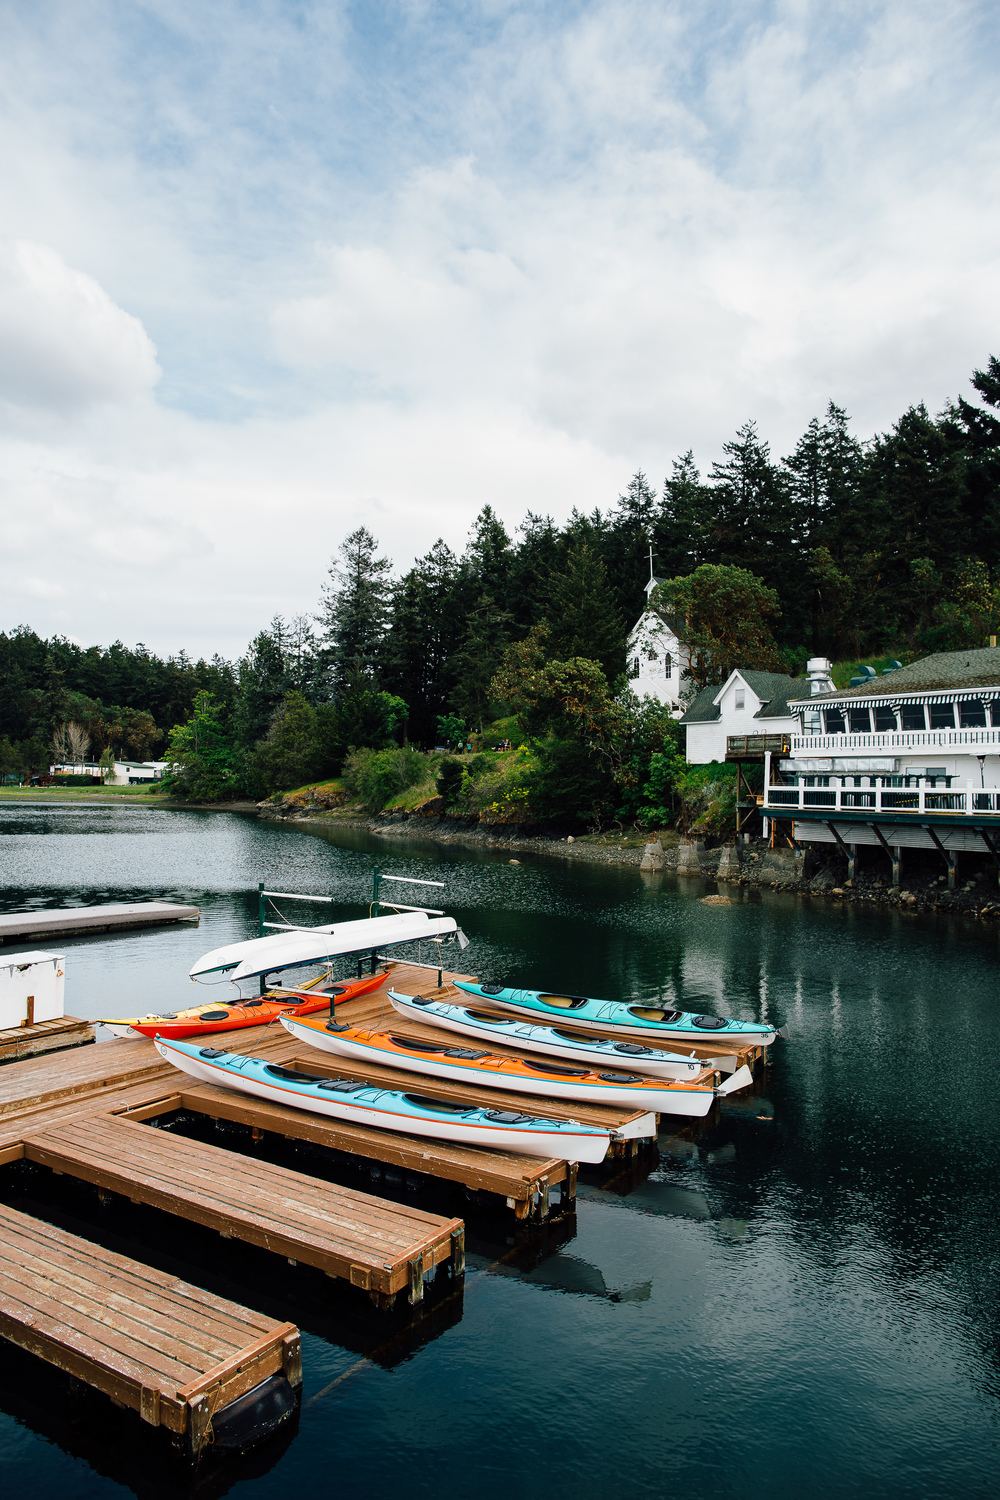 Roche Harbor Resort Wedding Planning | Roche Harbor Wedding Reception Venue | New Creations Wedding Design and Coordination